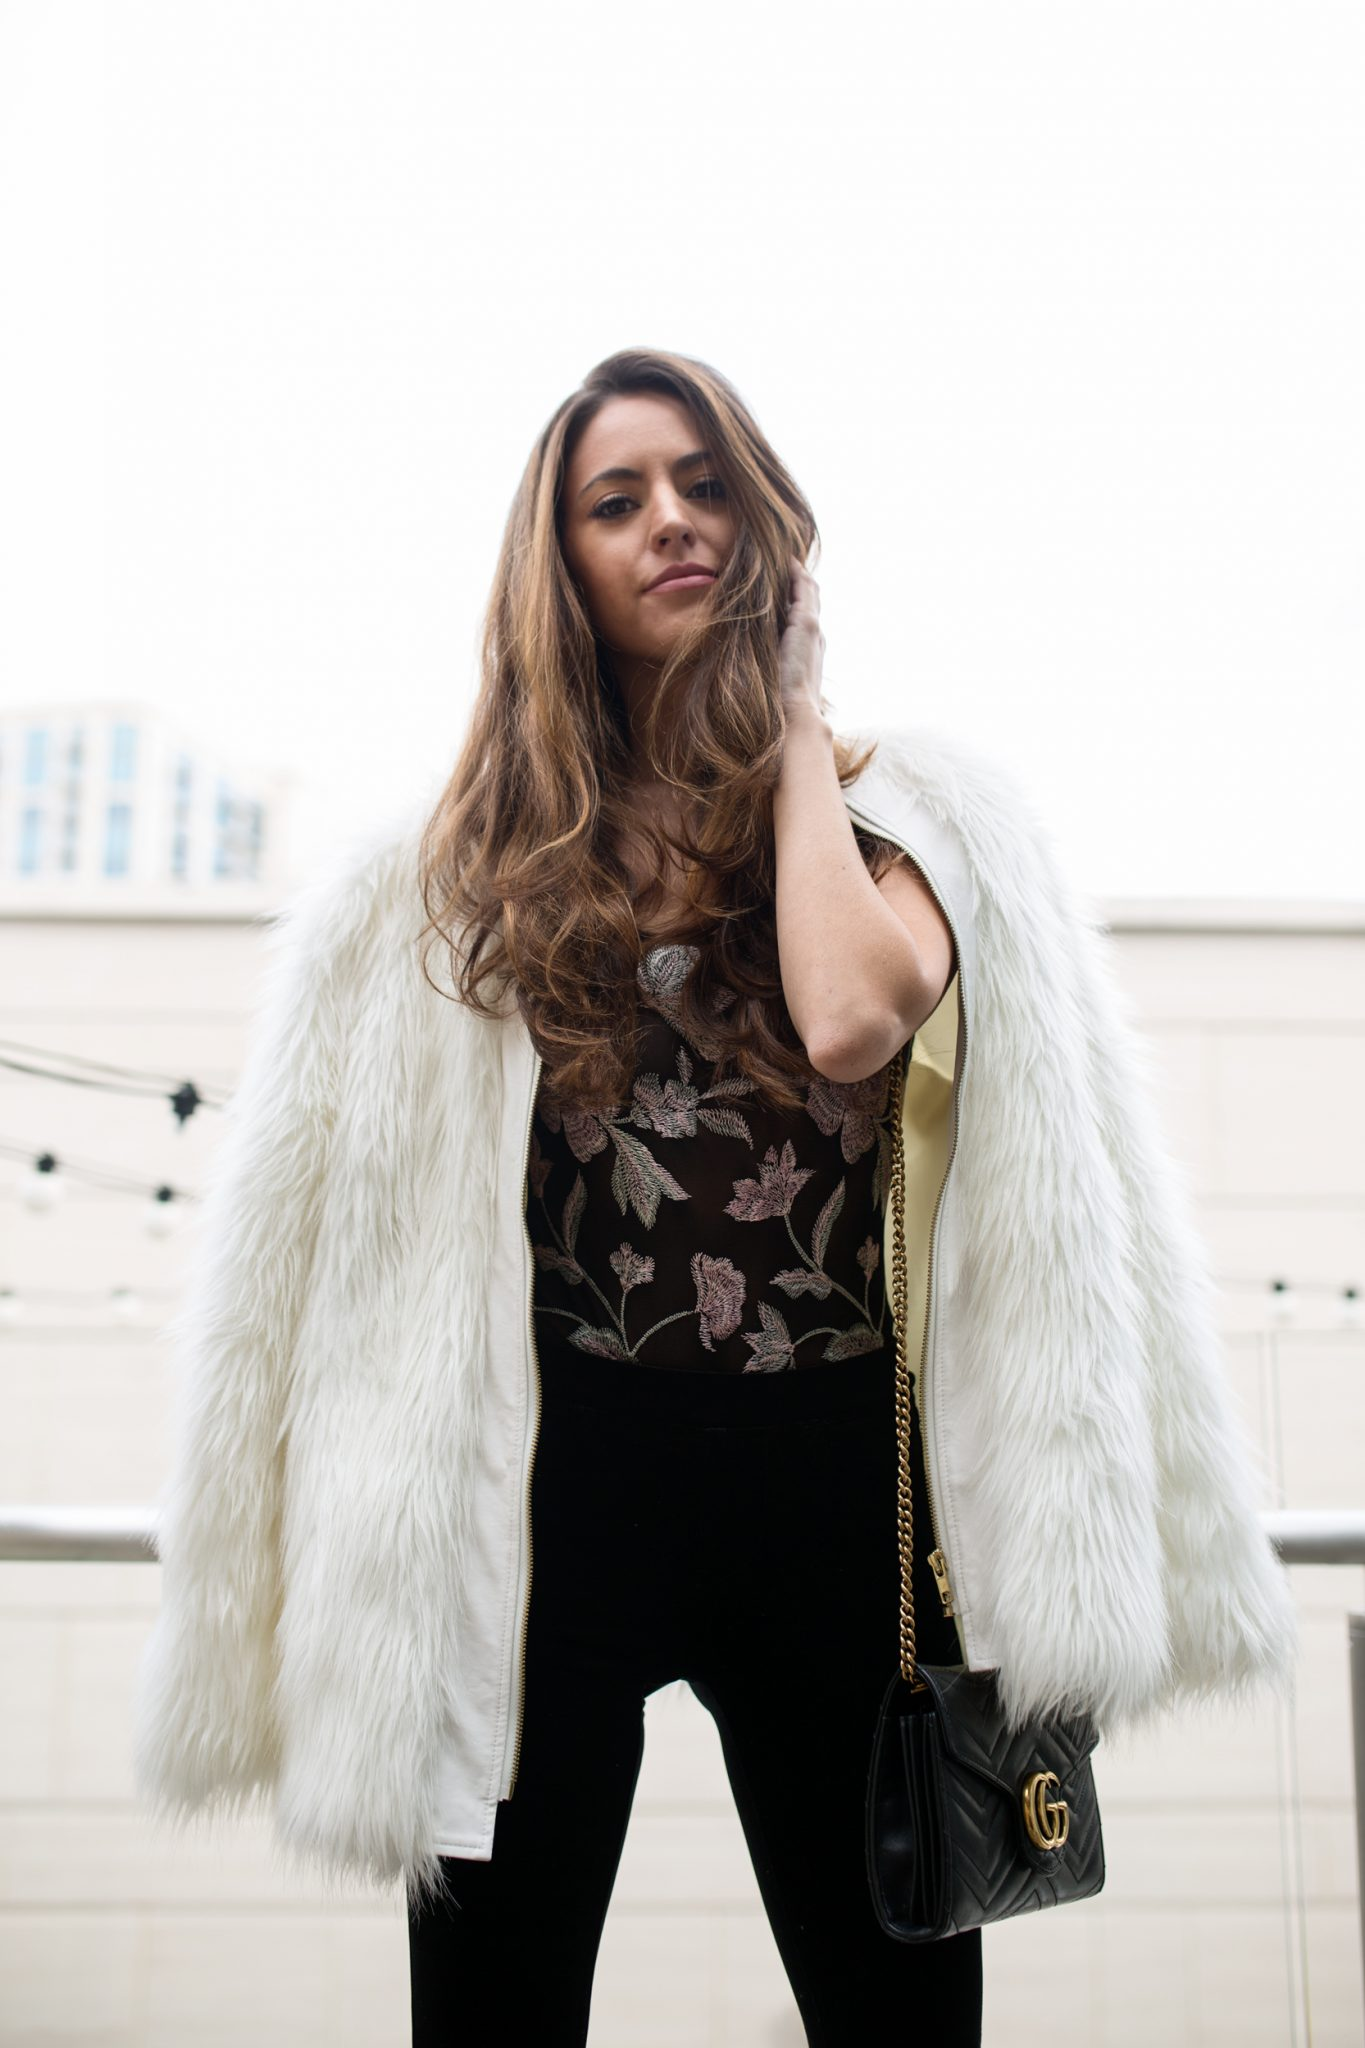 NYE outfit inspo, what to wear on new years eve 2017, NYE 2018, New Years 2018, retro chic NYE look, Blank NYC black velvet flares, express floral bodysuit, white fur coat, Atlanta style bloggers